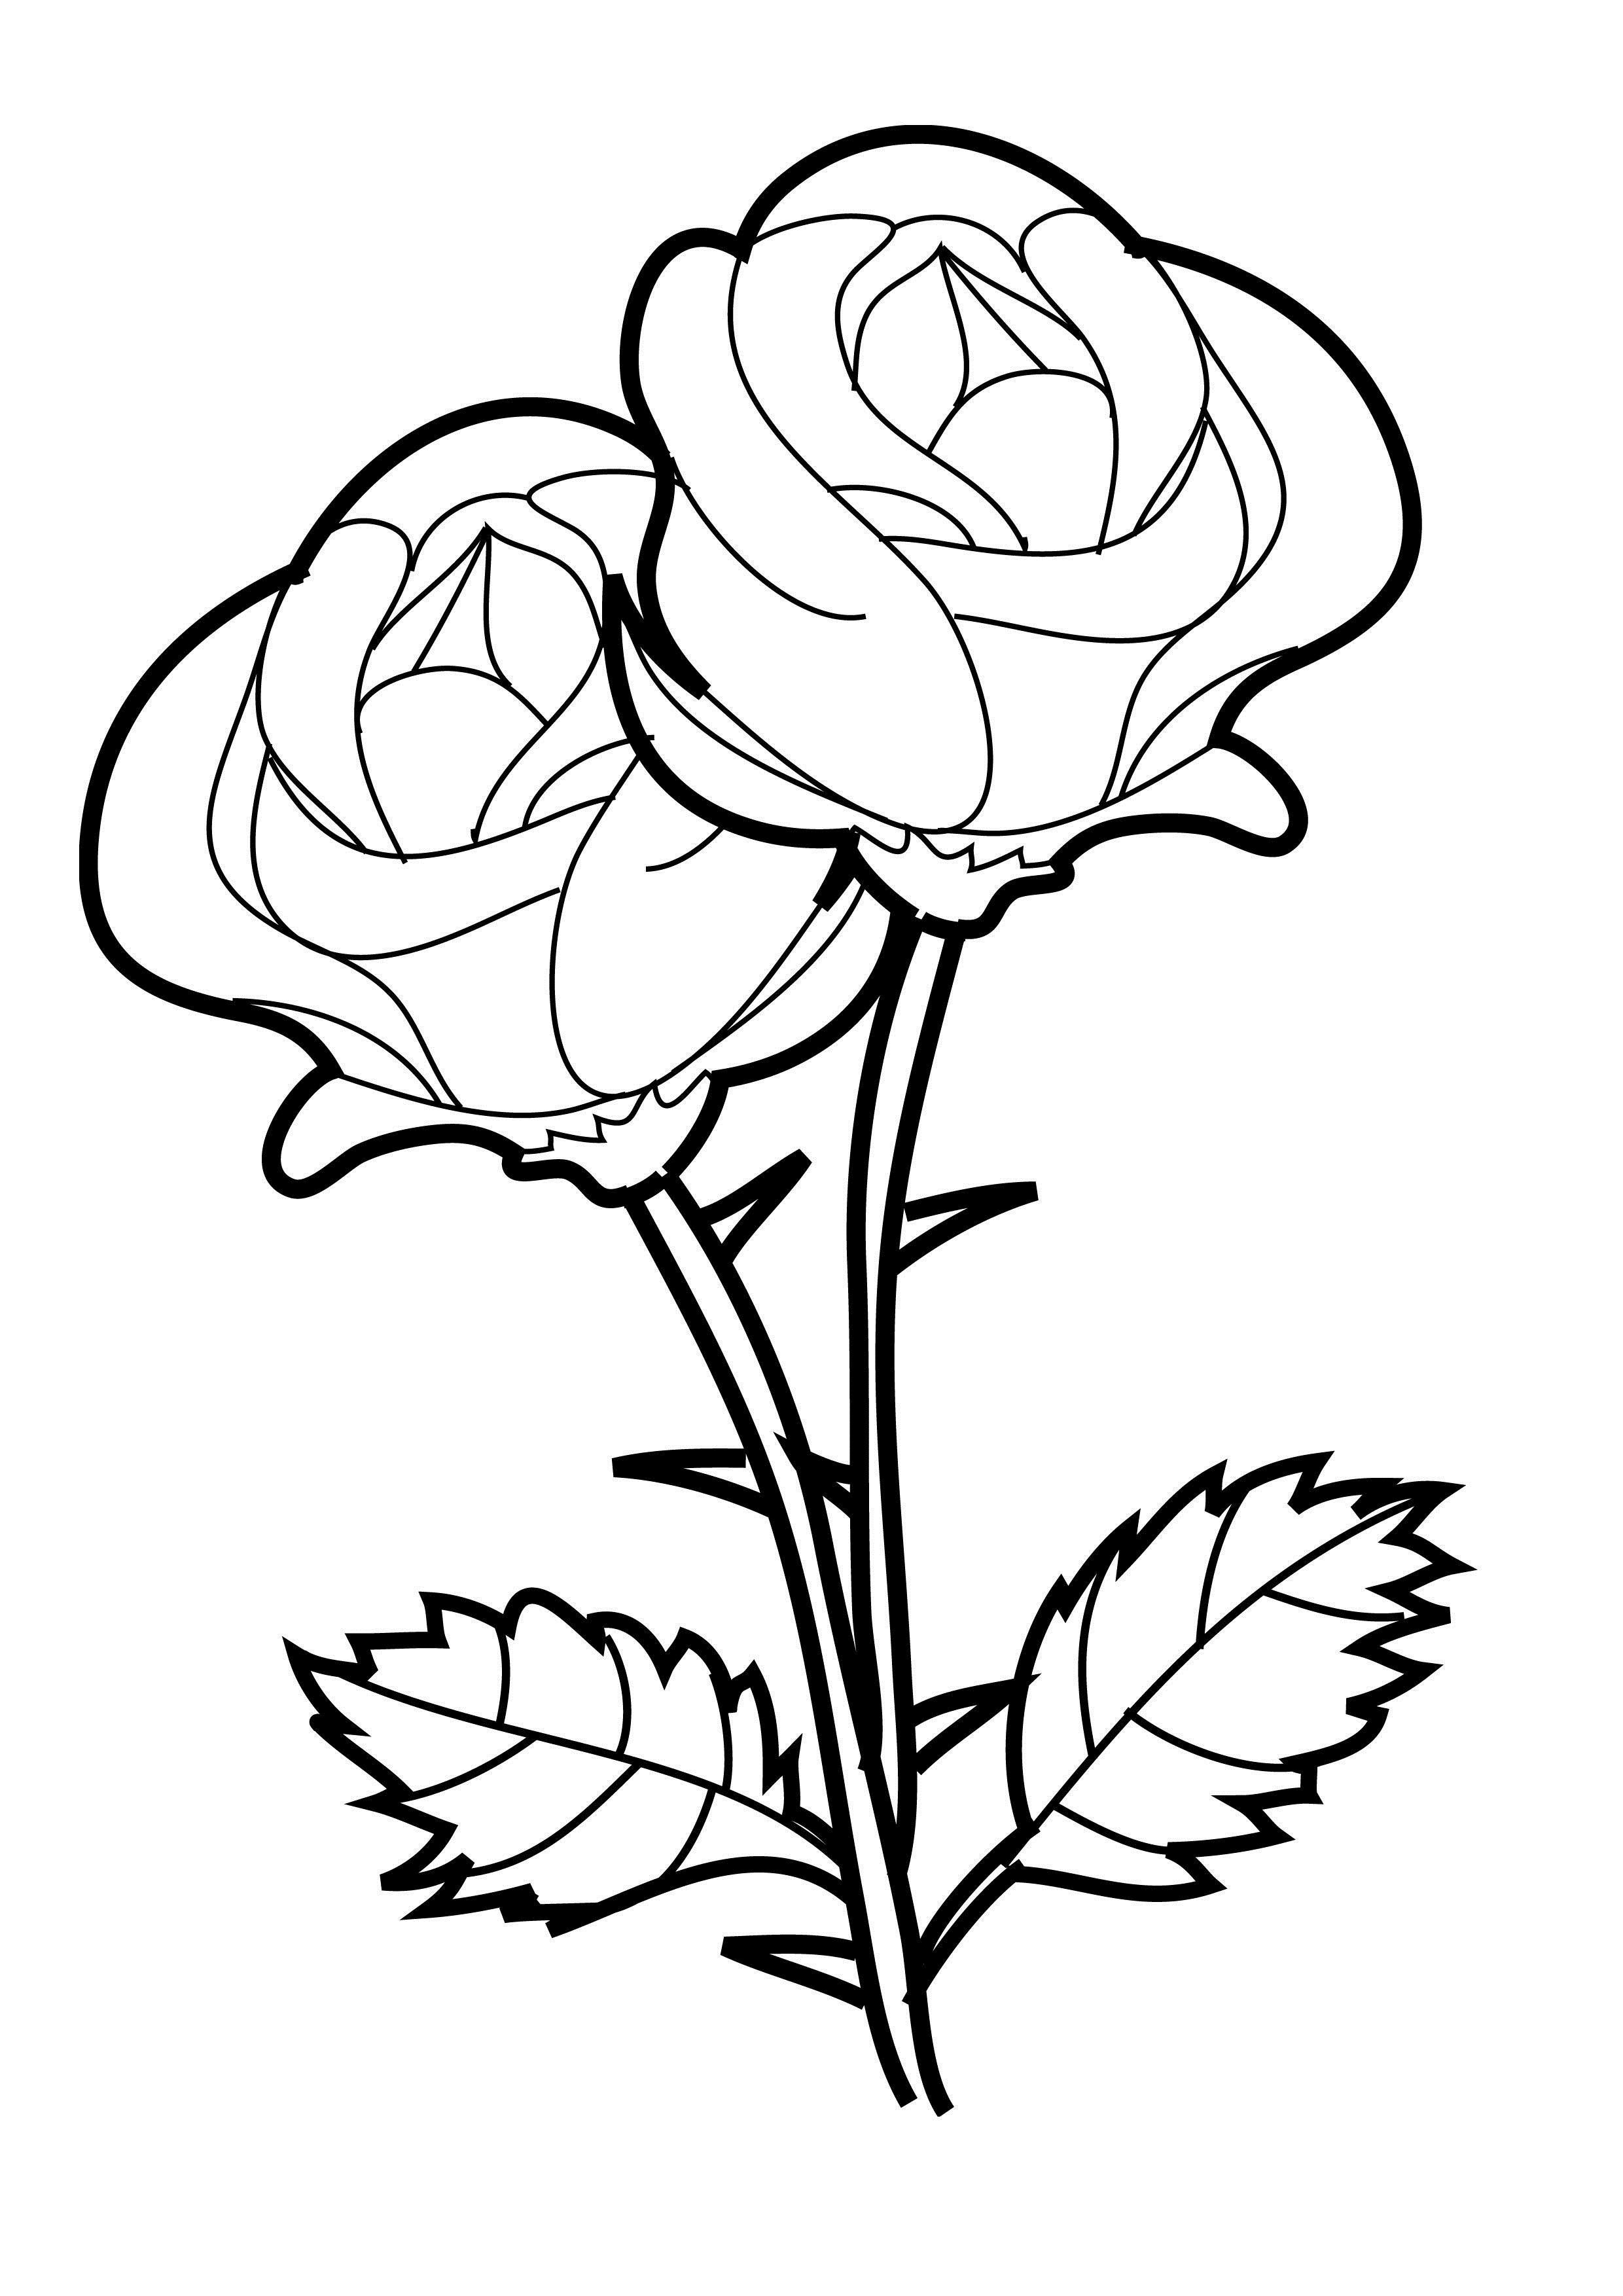 Roses And Hearts Coloring Pages Coloring Book Coloring Pages Of Roses Andearts Book Ideas Flower